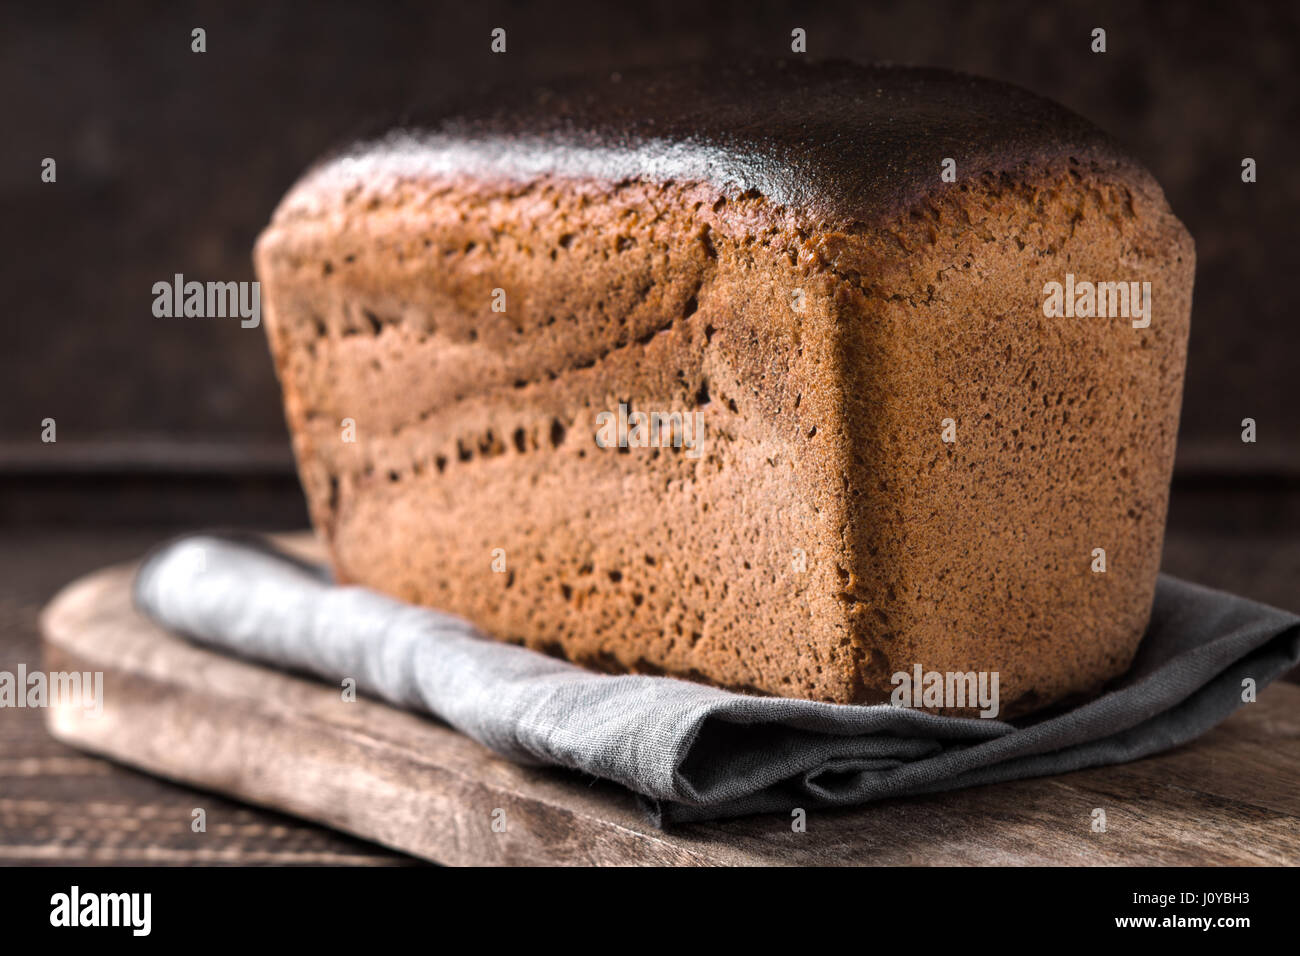 Rye bread on the wooden board horizontal Stock Photo